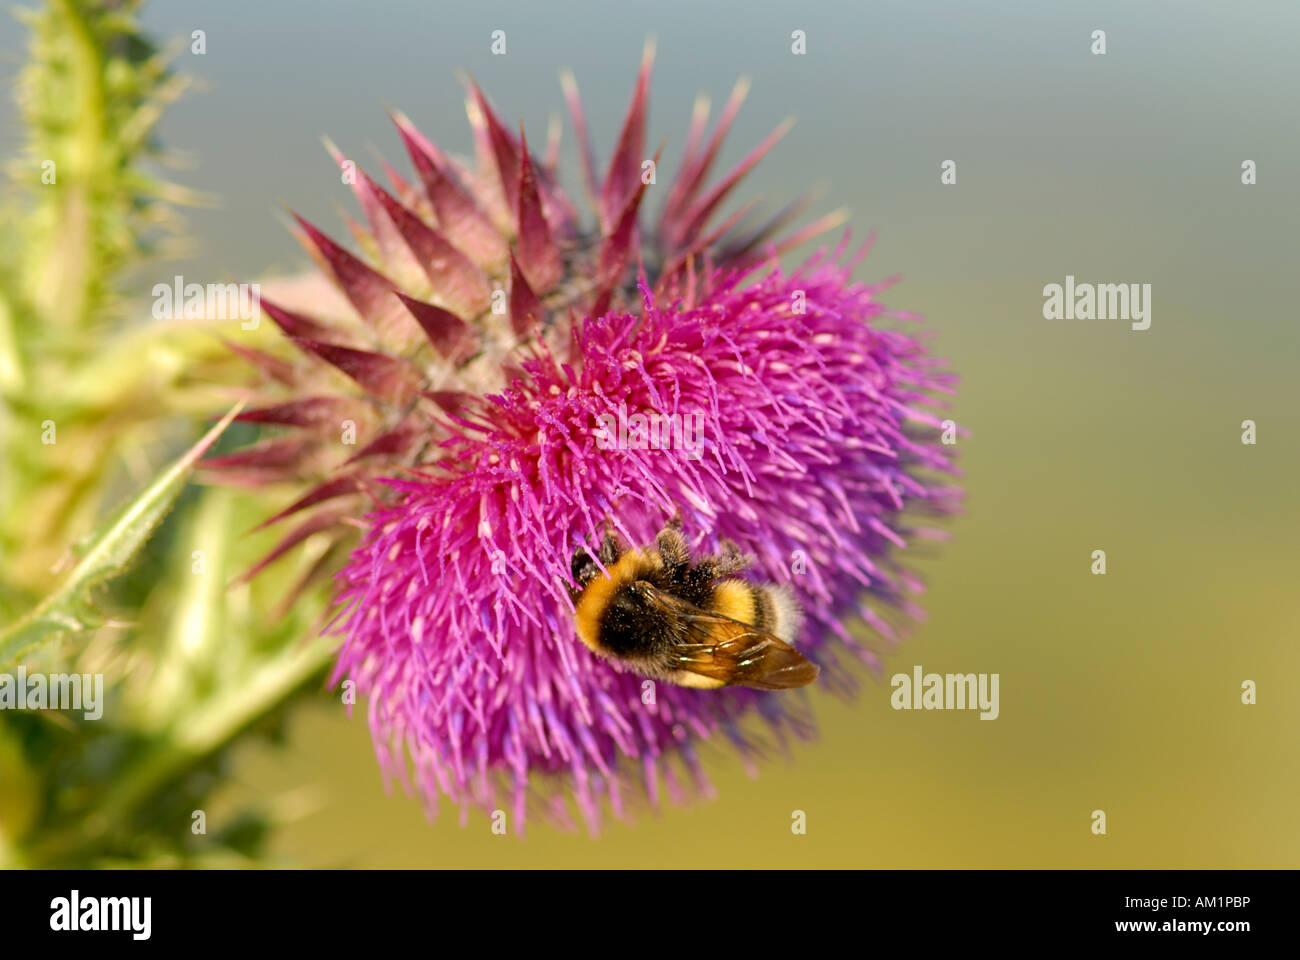 Musk thistle or Nodding thistle (Carduus nutans), the flower of the year 2008 - Germany, Europe - Stock Image